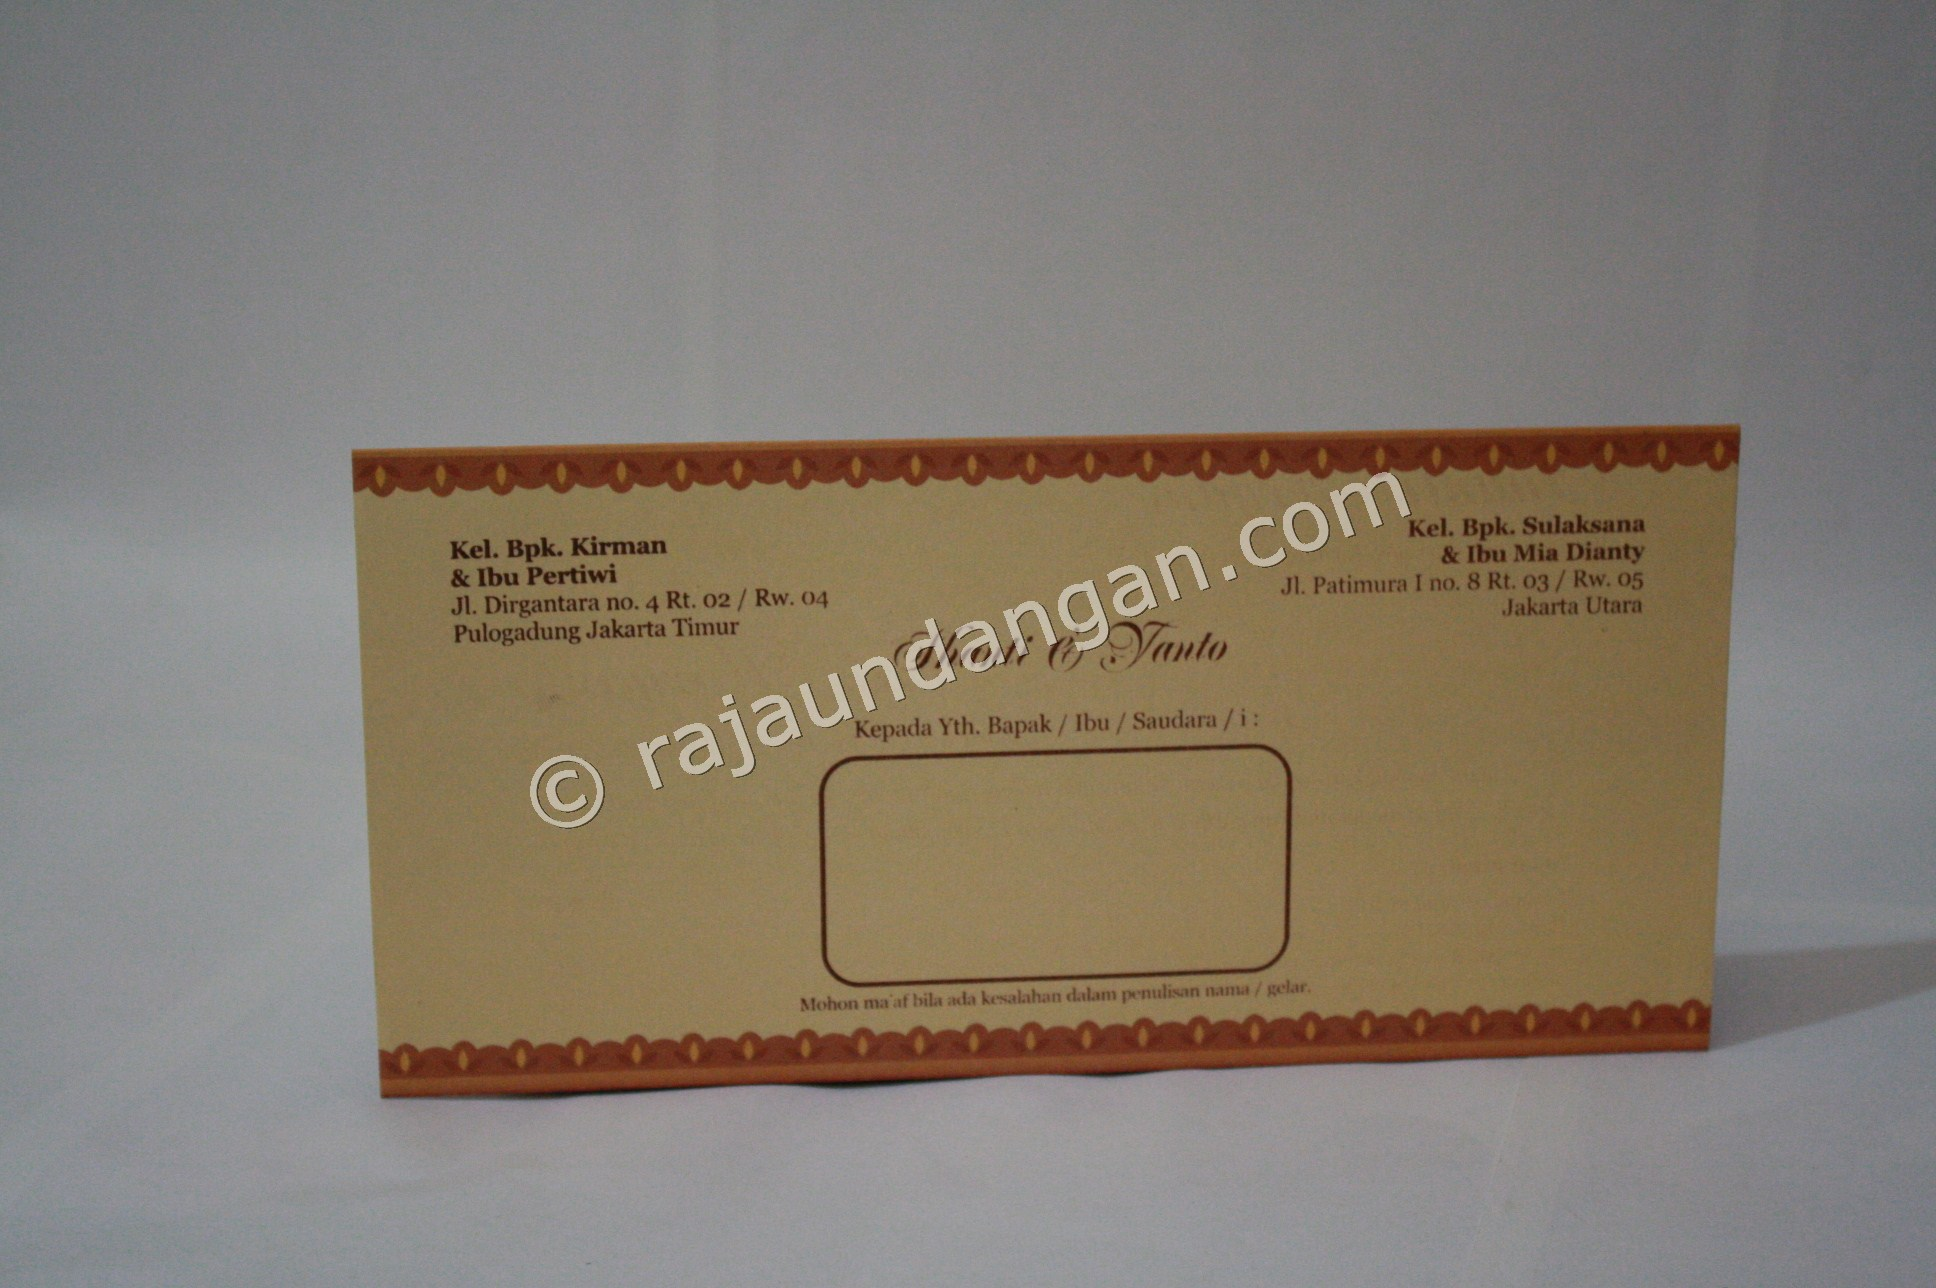 Cetak Wedding Invitations Unik dan Murah di Lontar